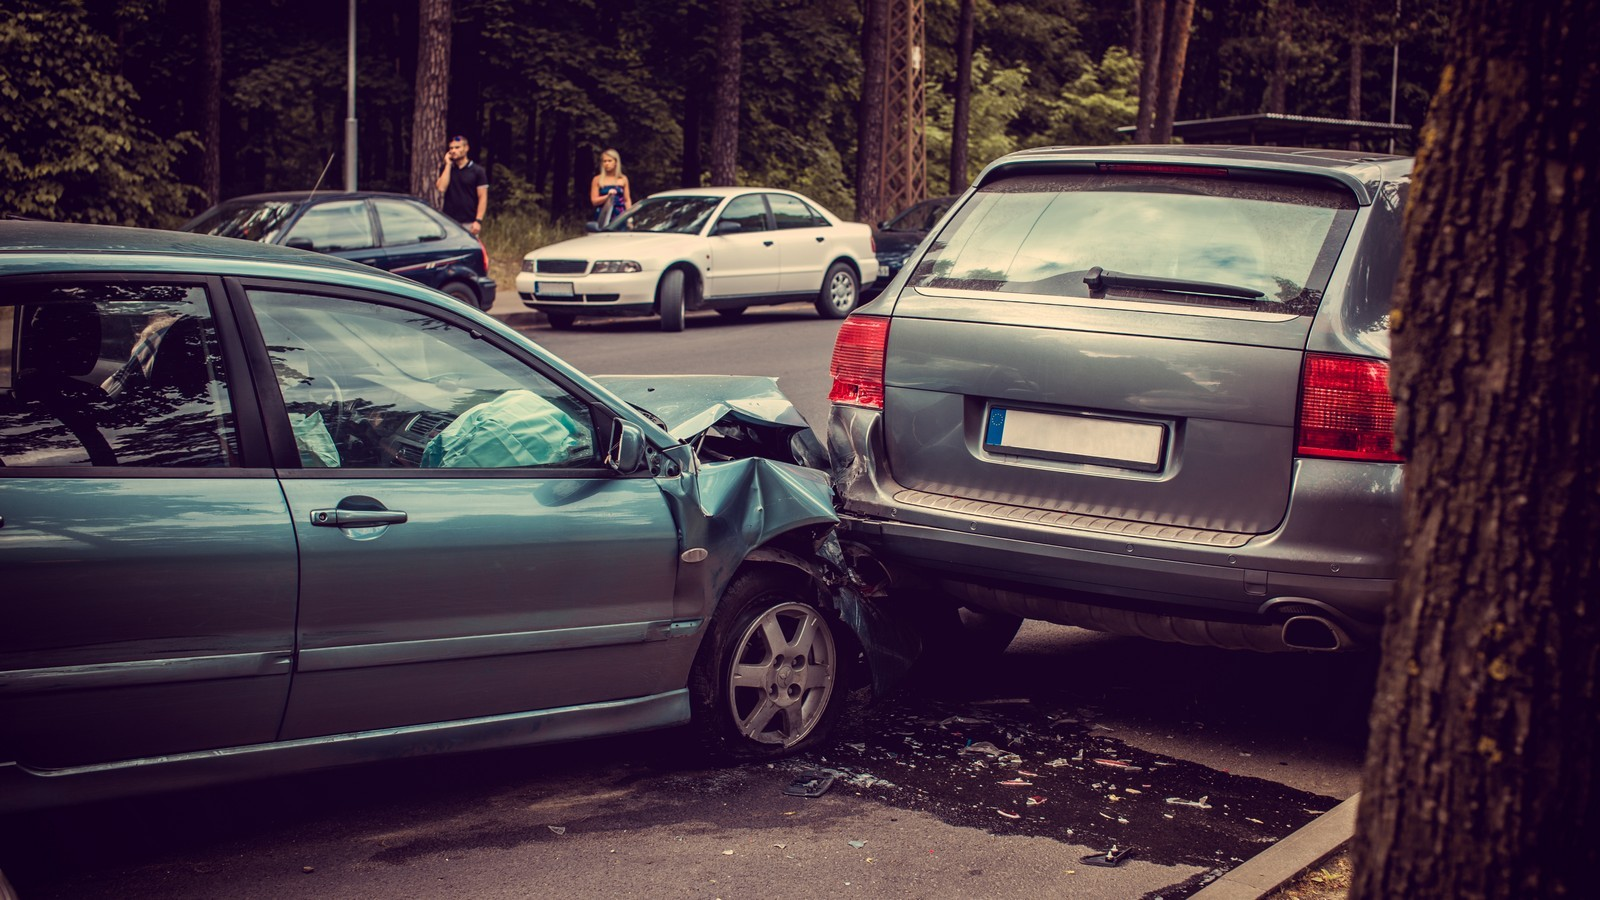 Cars accident on a road.